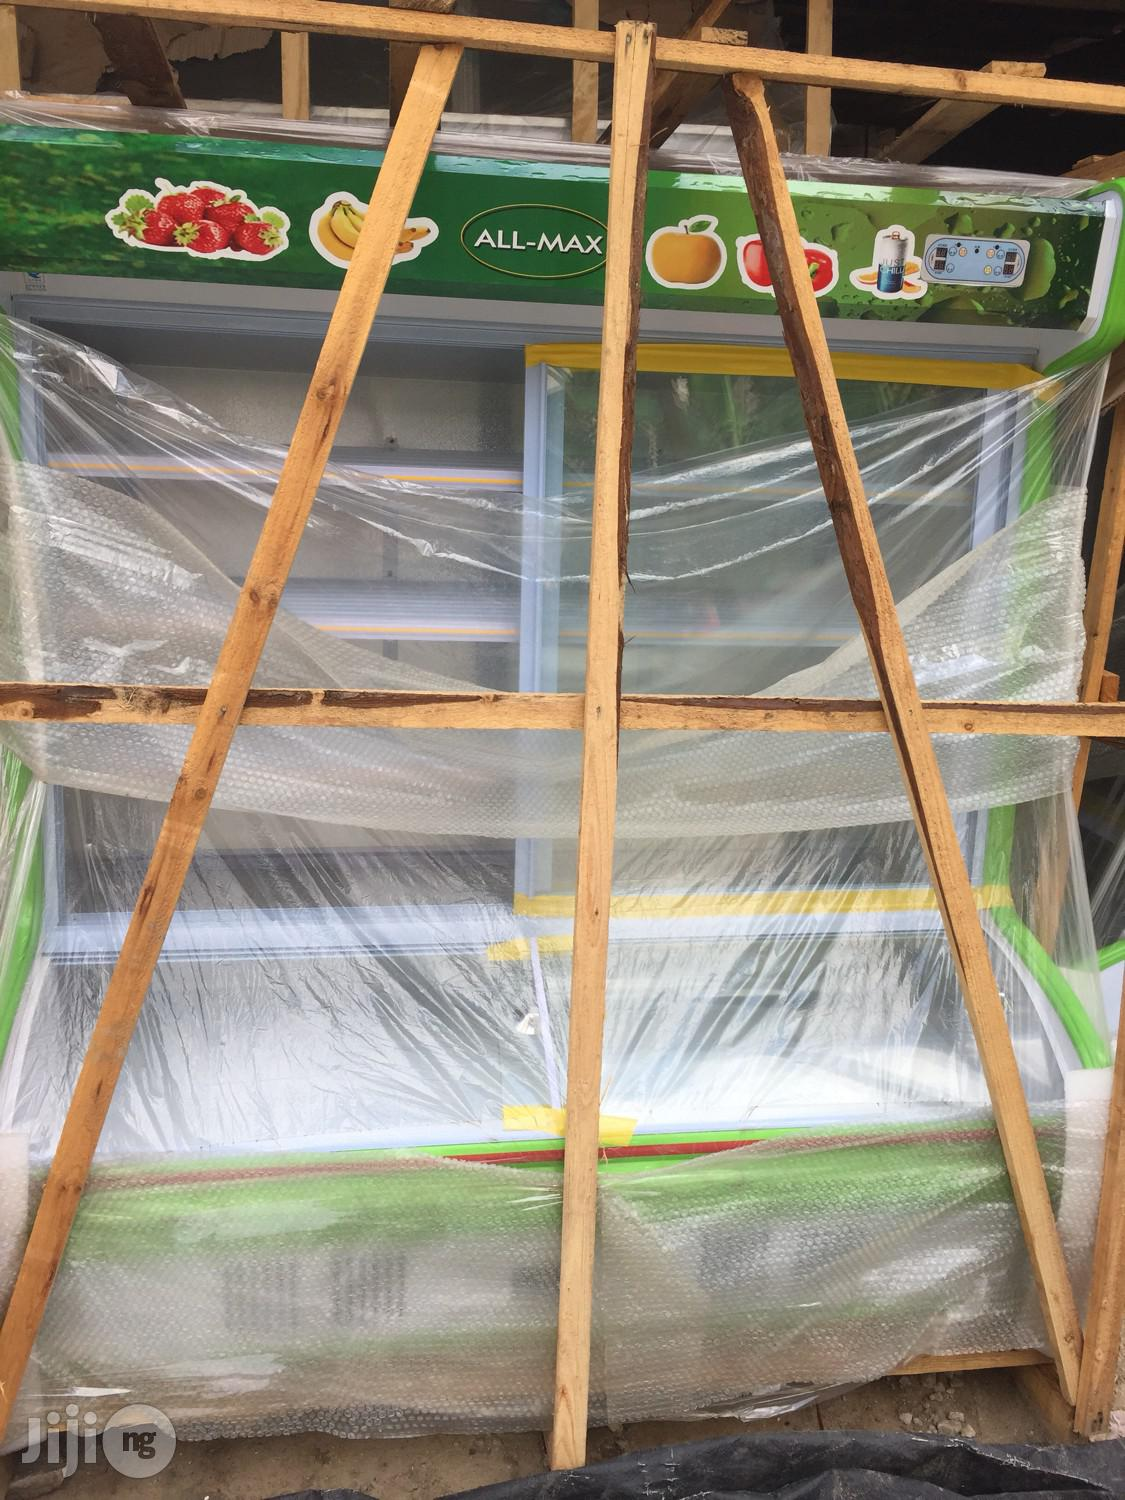 Supermarket Display Chiller | Store Equipment for sale in Central Business Dis, Abuja (FCT) State, Nigeria